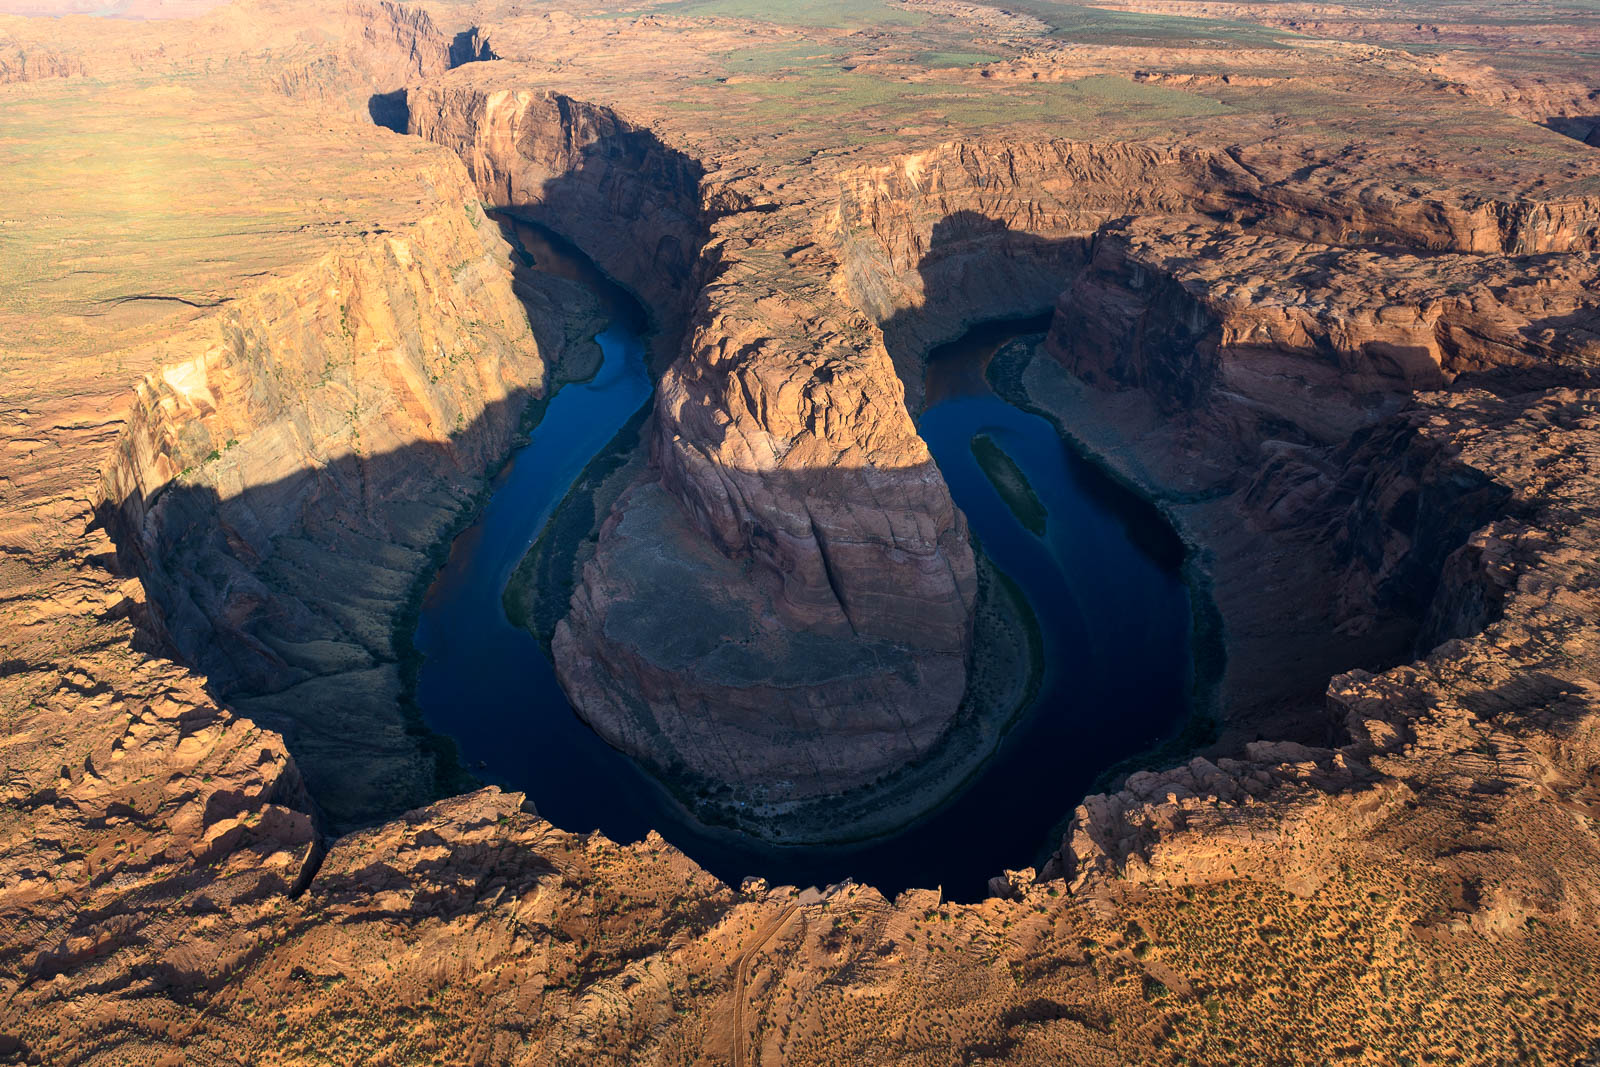 This is going to be a visual feast, let's start with the Horseshoe Bend